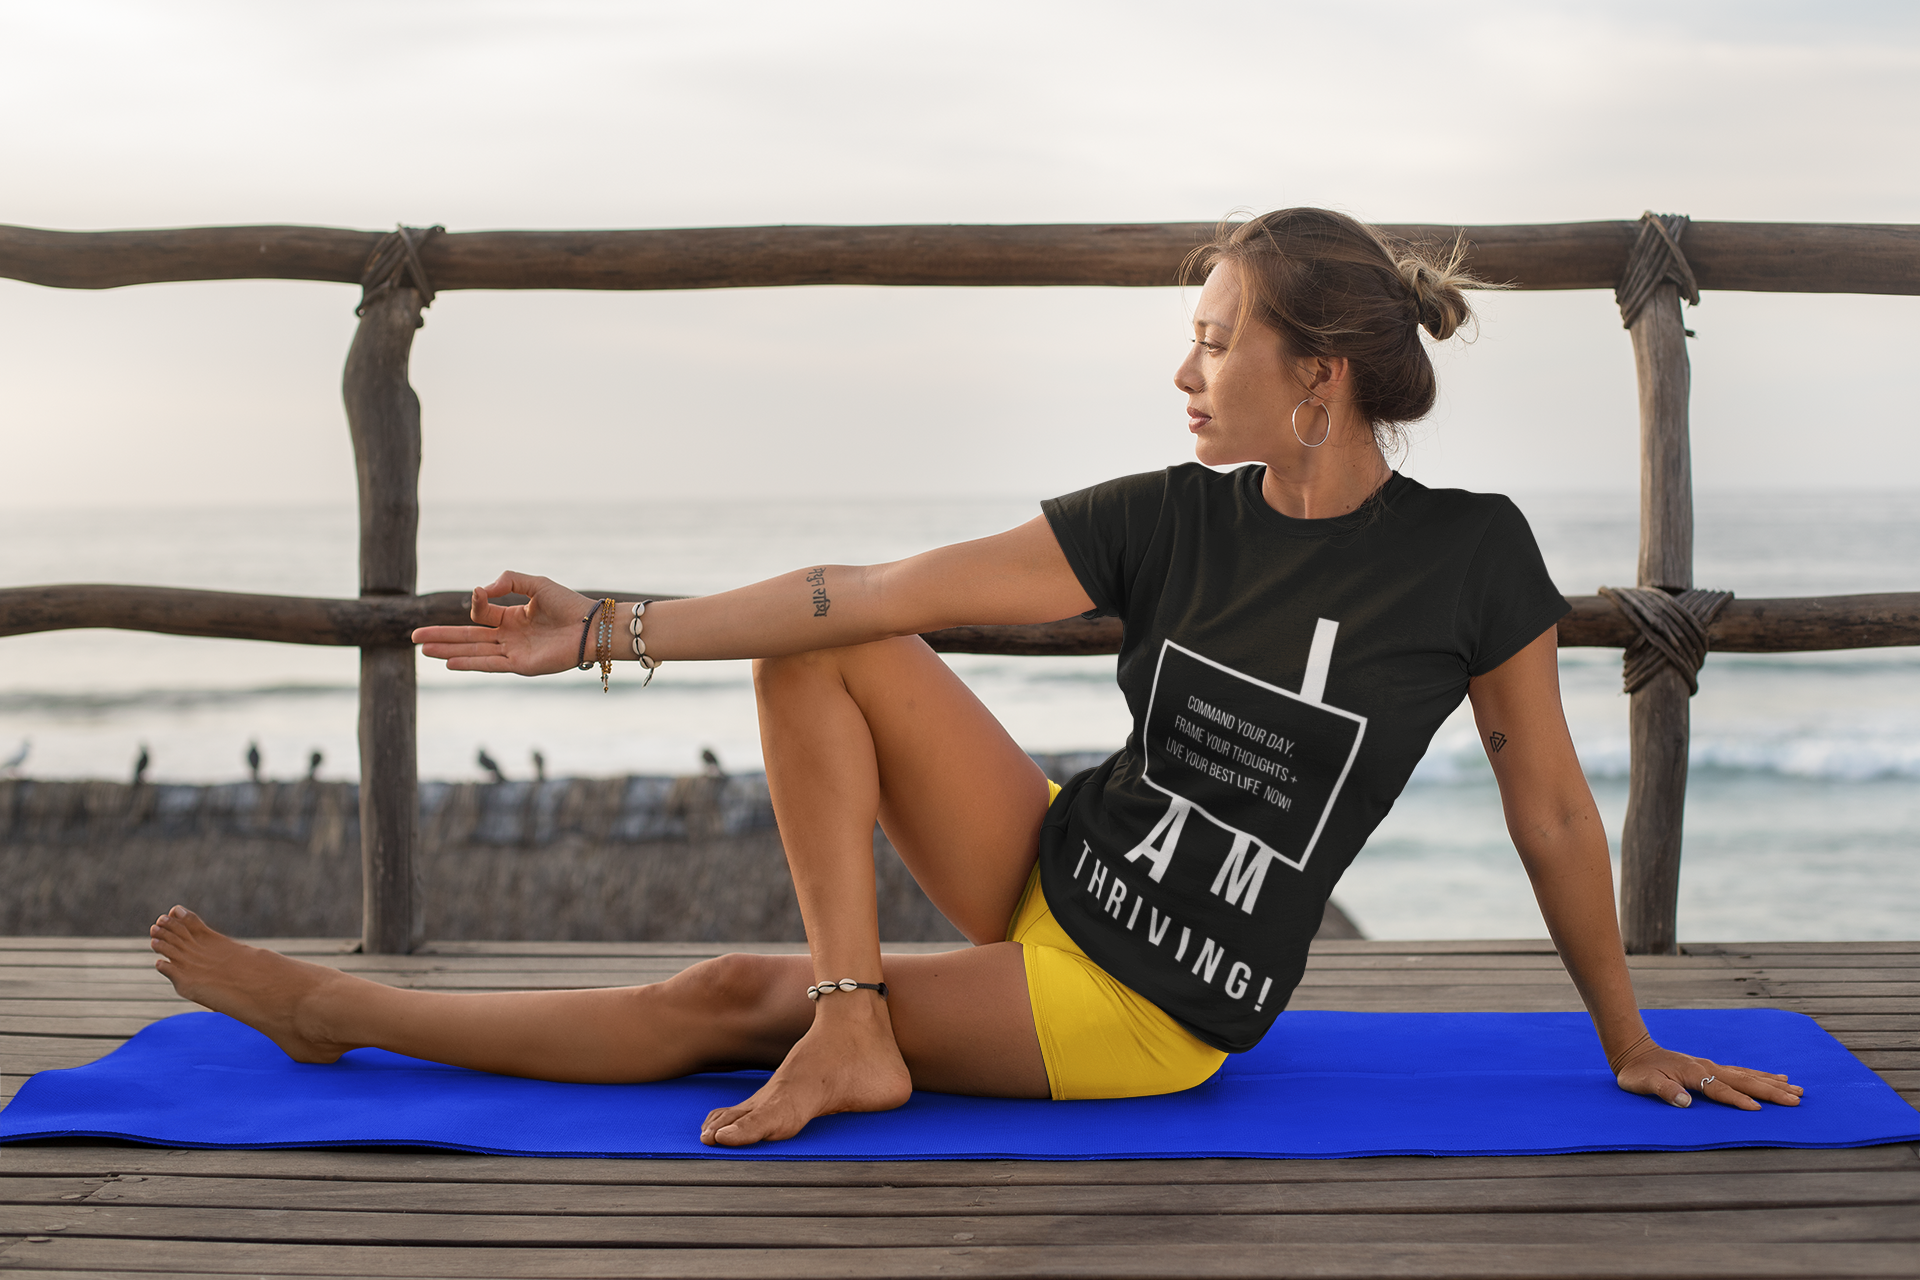 t-shirt-mockup-of-a-woman-doing-yoga-by-the-sea-26854.png